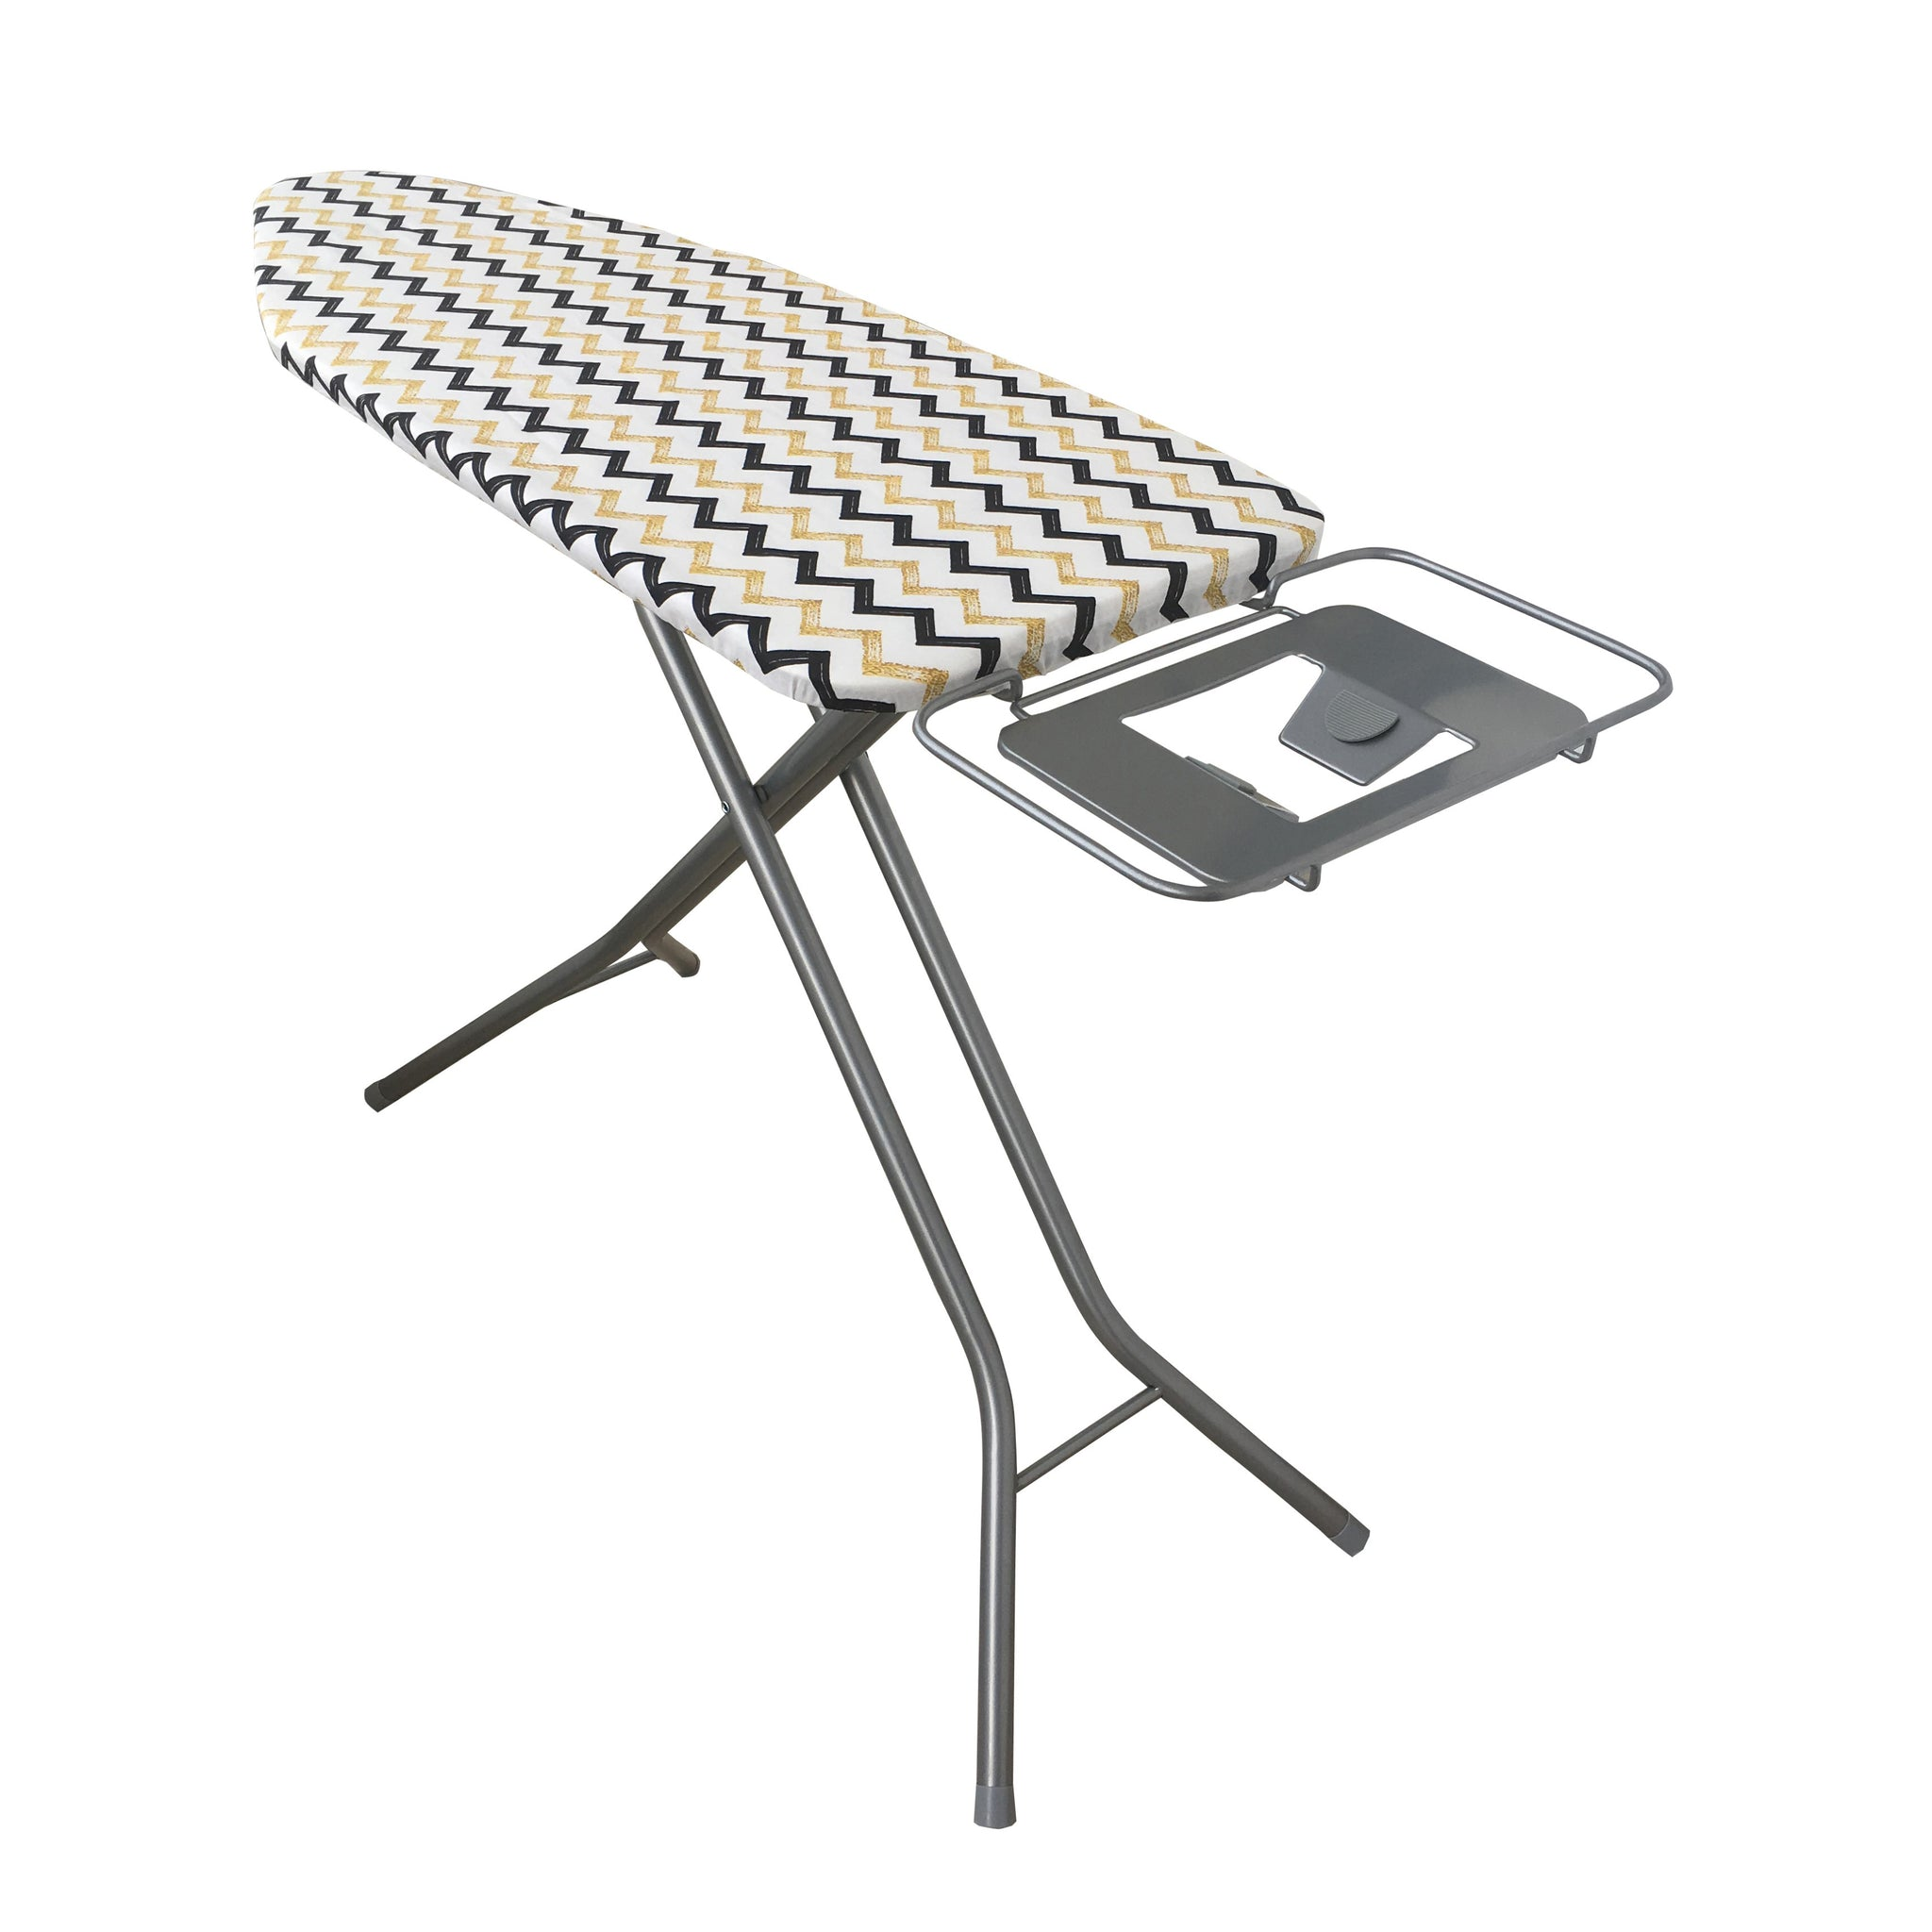 Royalford RF8735 Mesh Ironing Board 122cmx43cmx96cm- Portable, Steam Iron Rest, Heat Resistant Cover | Contemporary Lightweight Board with Adjustable Height & Rubber Feet Cover